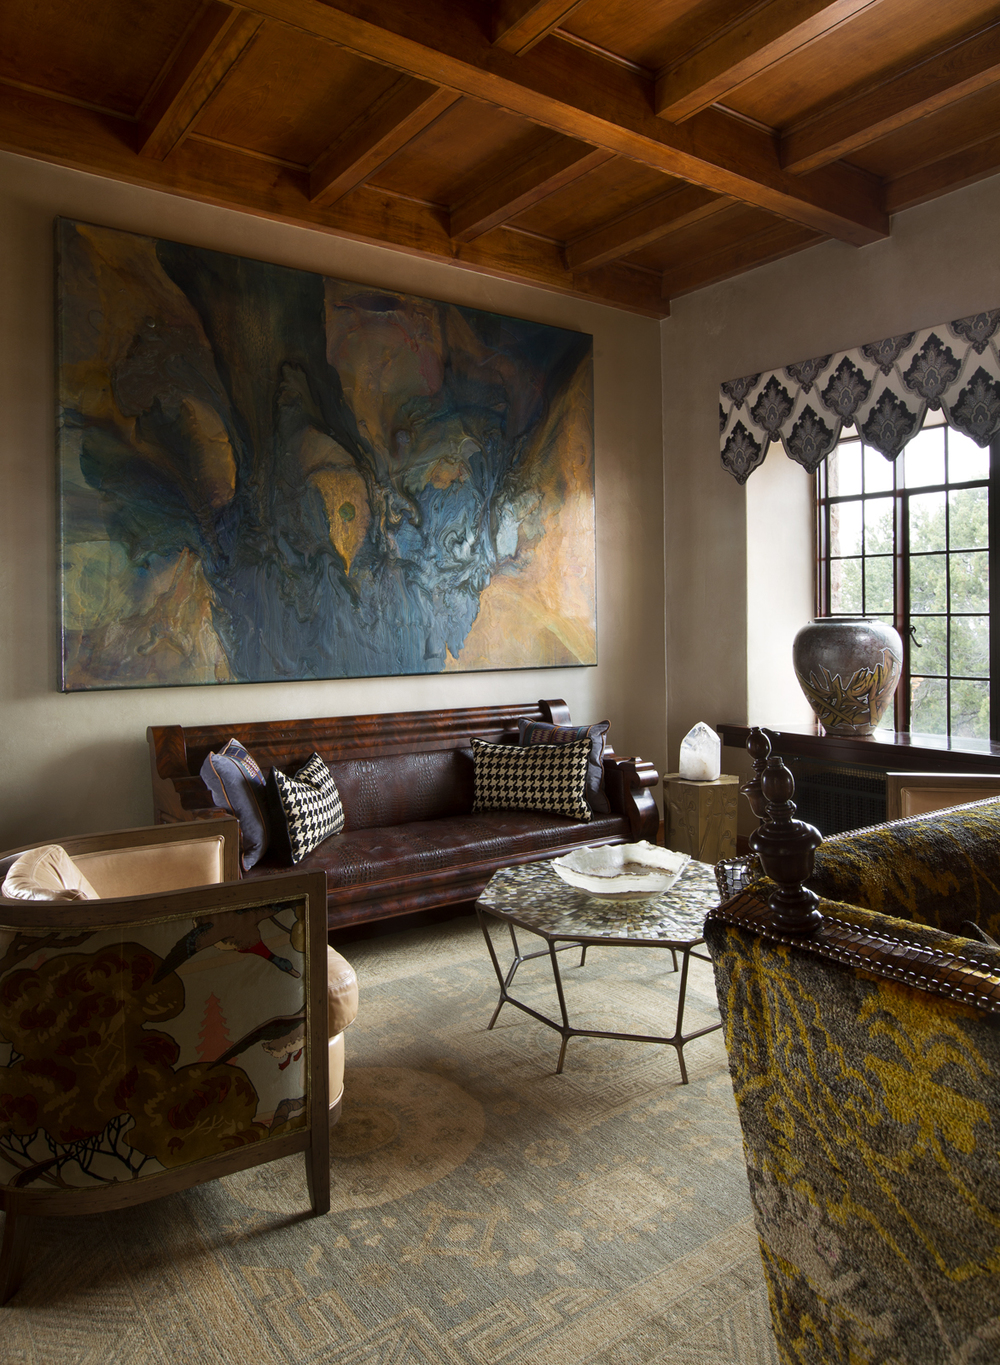 ShowHouse Santa Fe 2014 - Living Room Interiors by David Naylor, Photo by Kate Russell